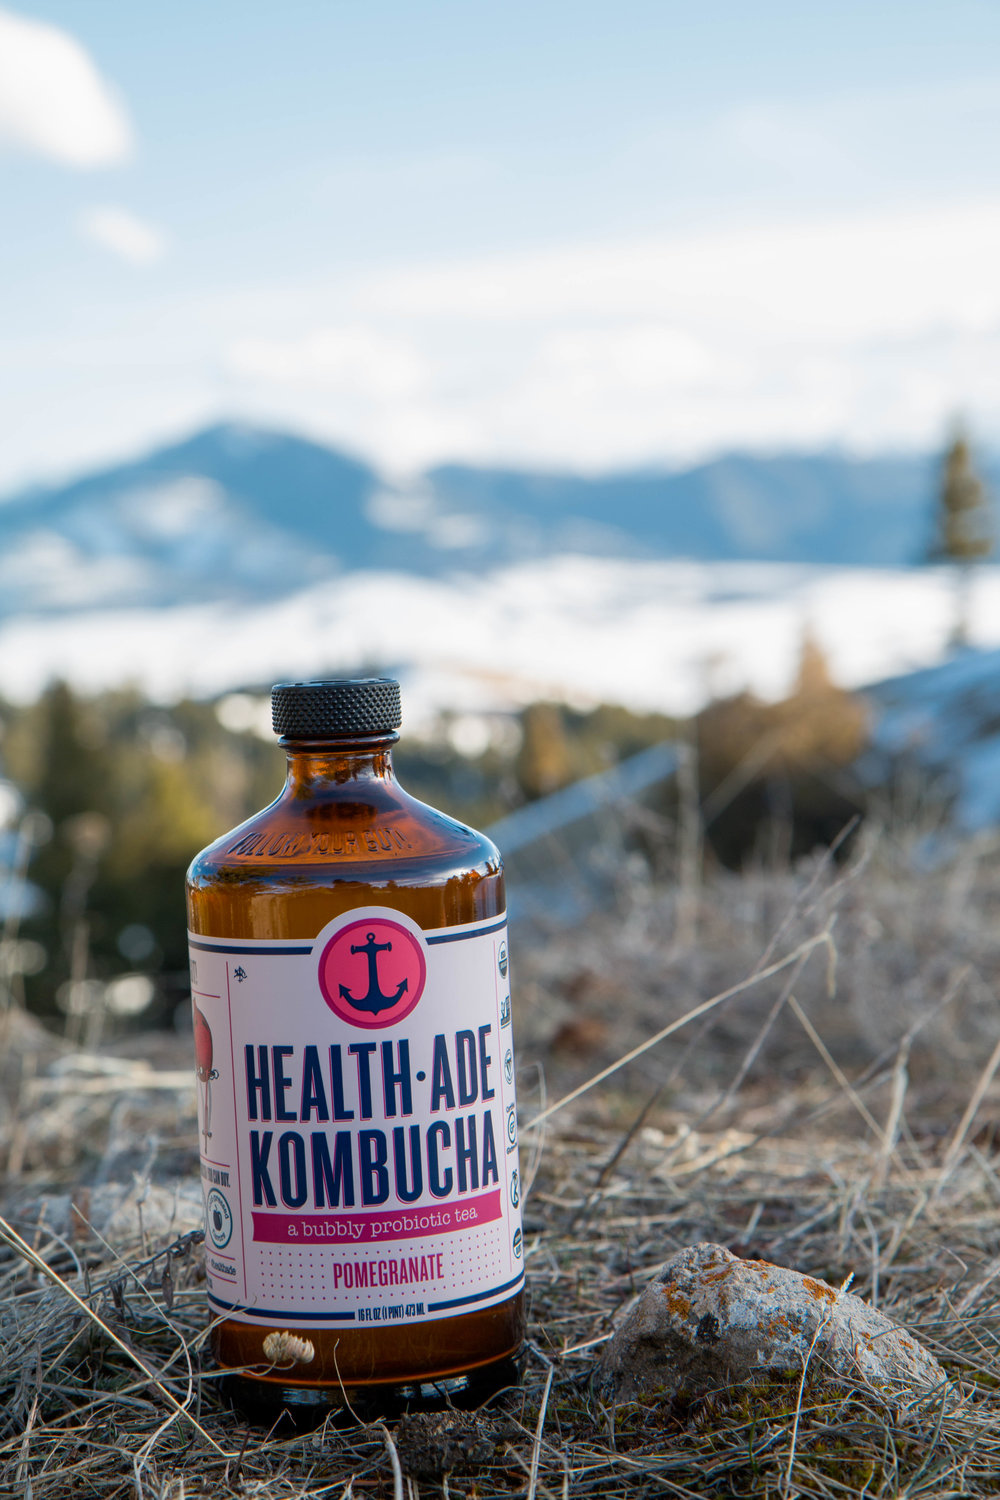 Health-Ade Kombucha. Small batch organic, vegan, raw certified, handcrafted, delicious flavors of highest quality kombucha. No GMOs. Follow your gut.